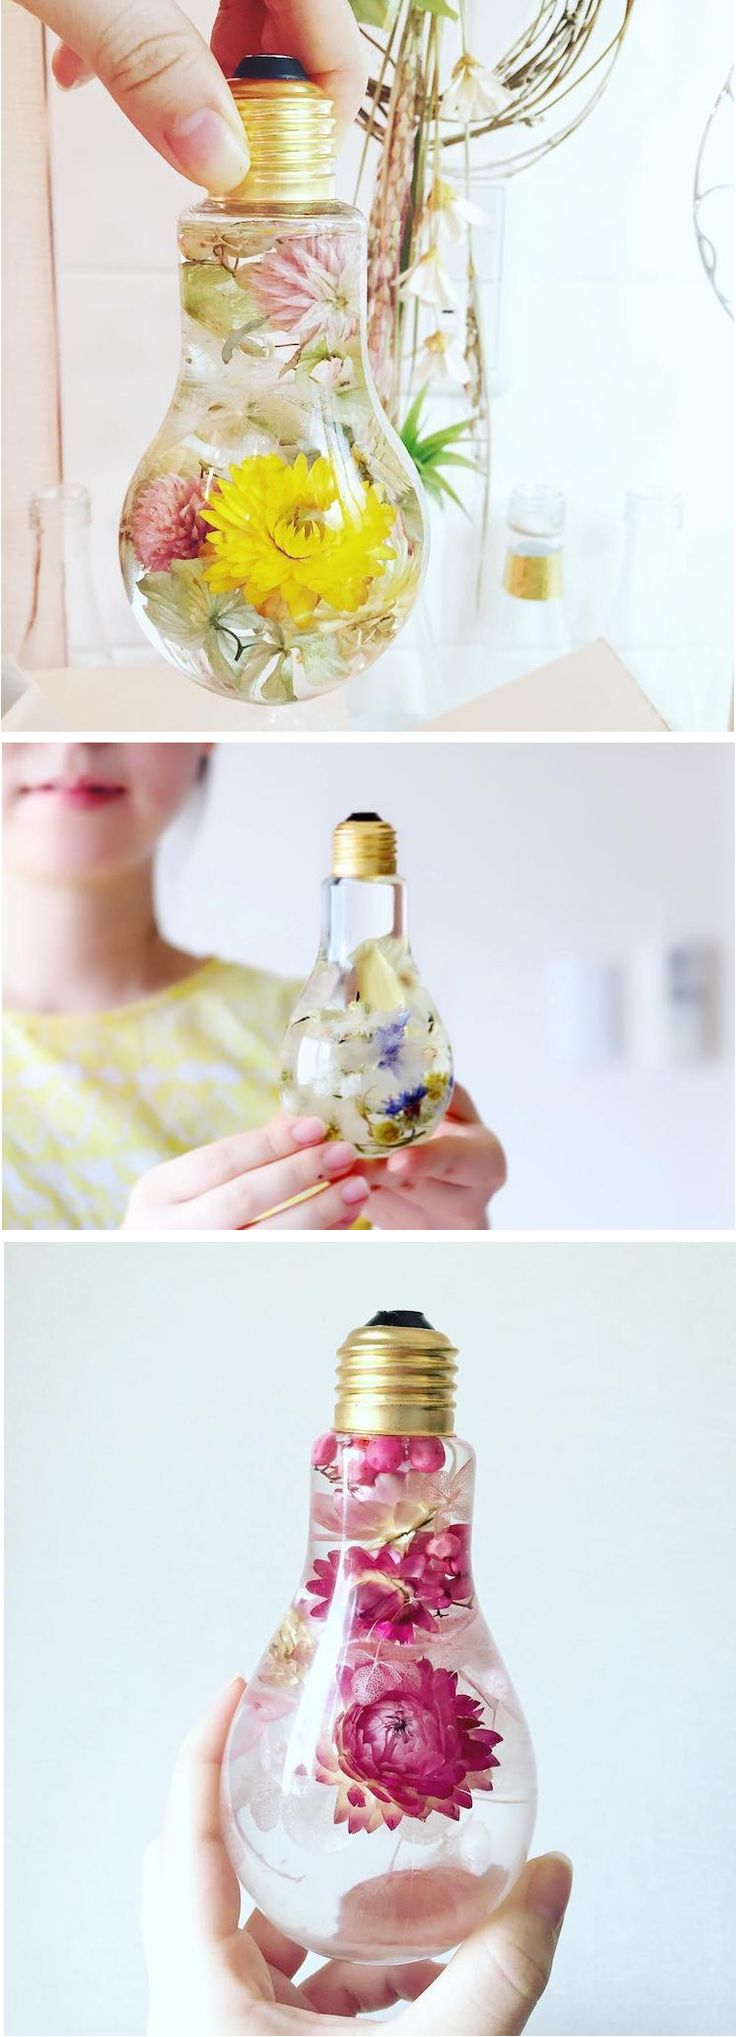 Display beautiful blooms in a unique flower light bulb vase. pinterest: katepisors